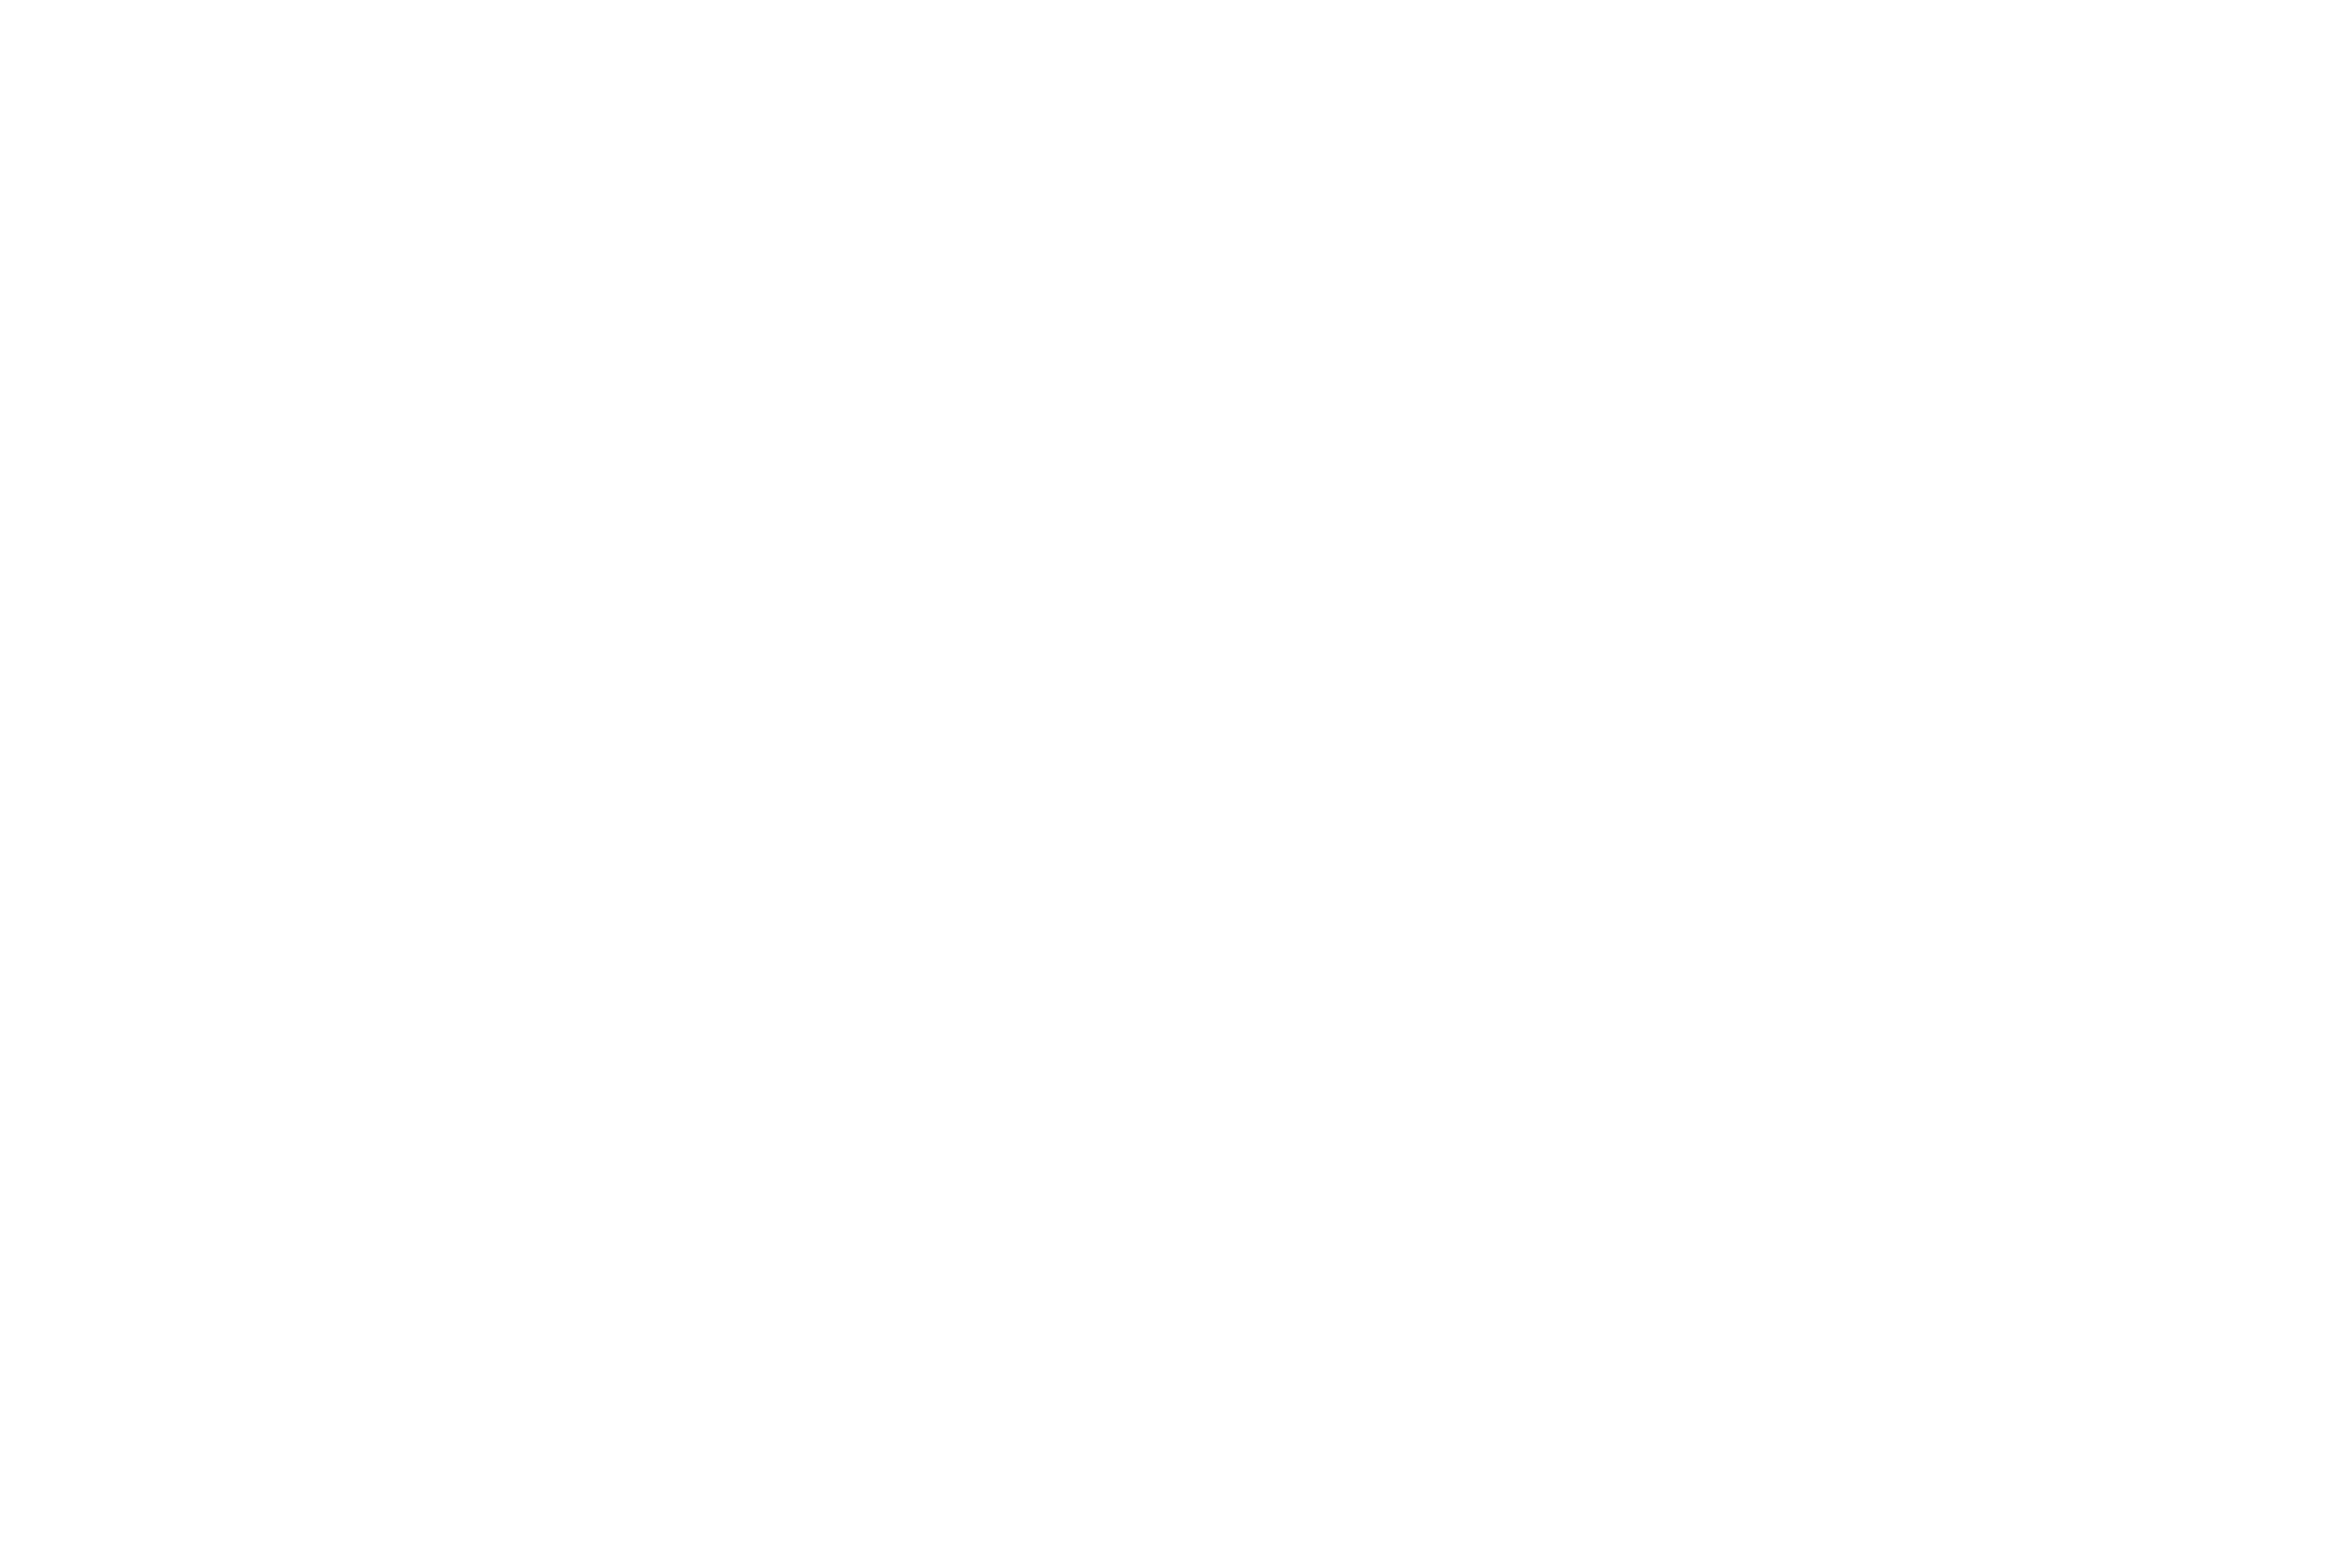 RDP3 Photography